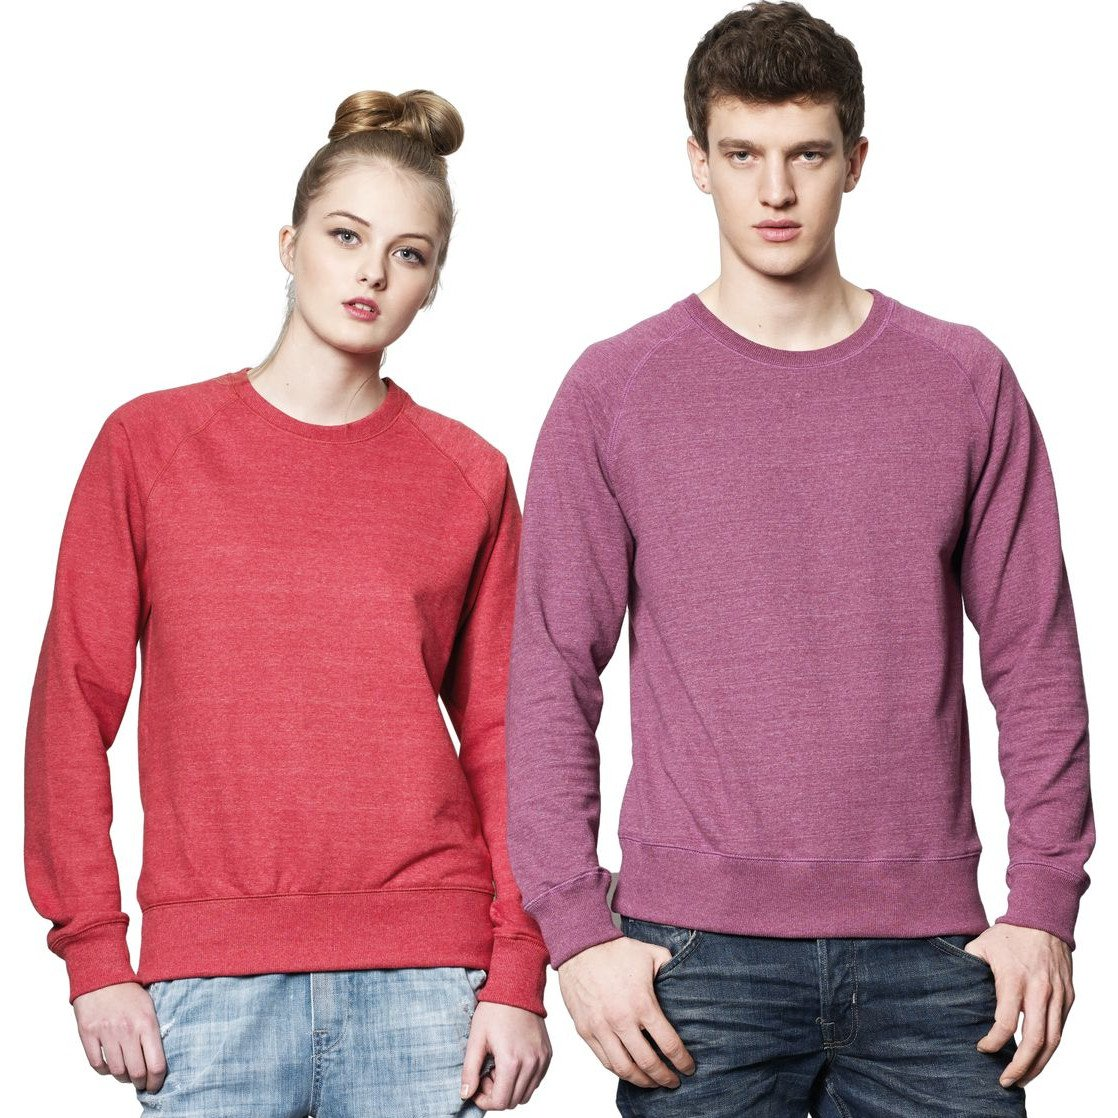 Felpa unisex Salvage Recycled in cotone biologico